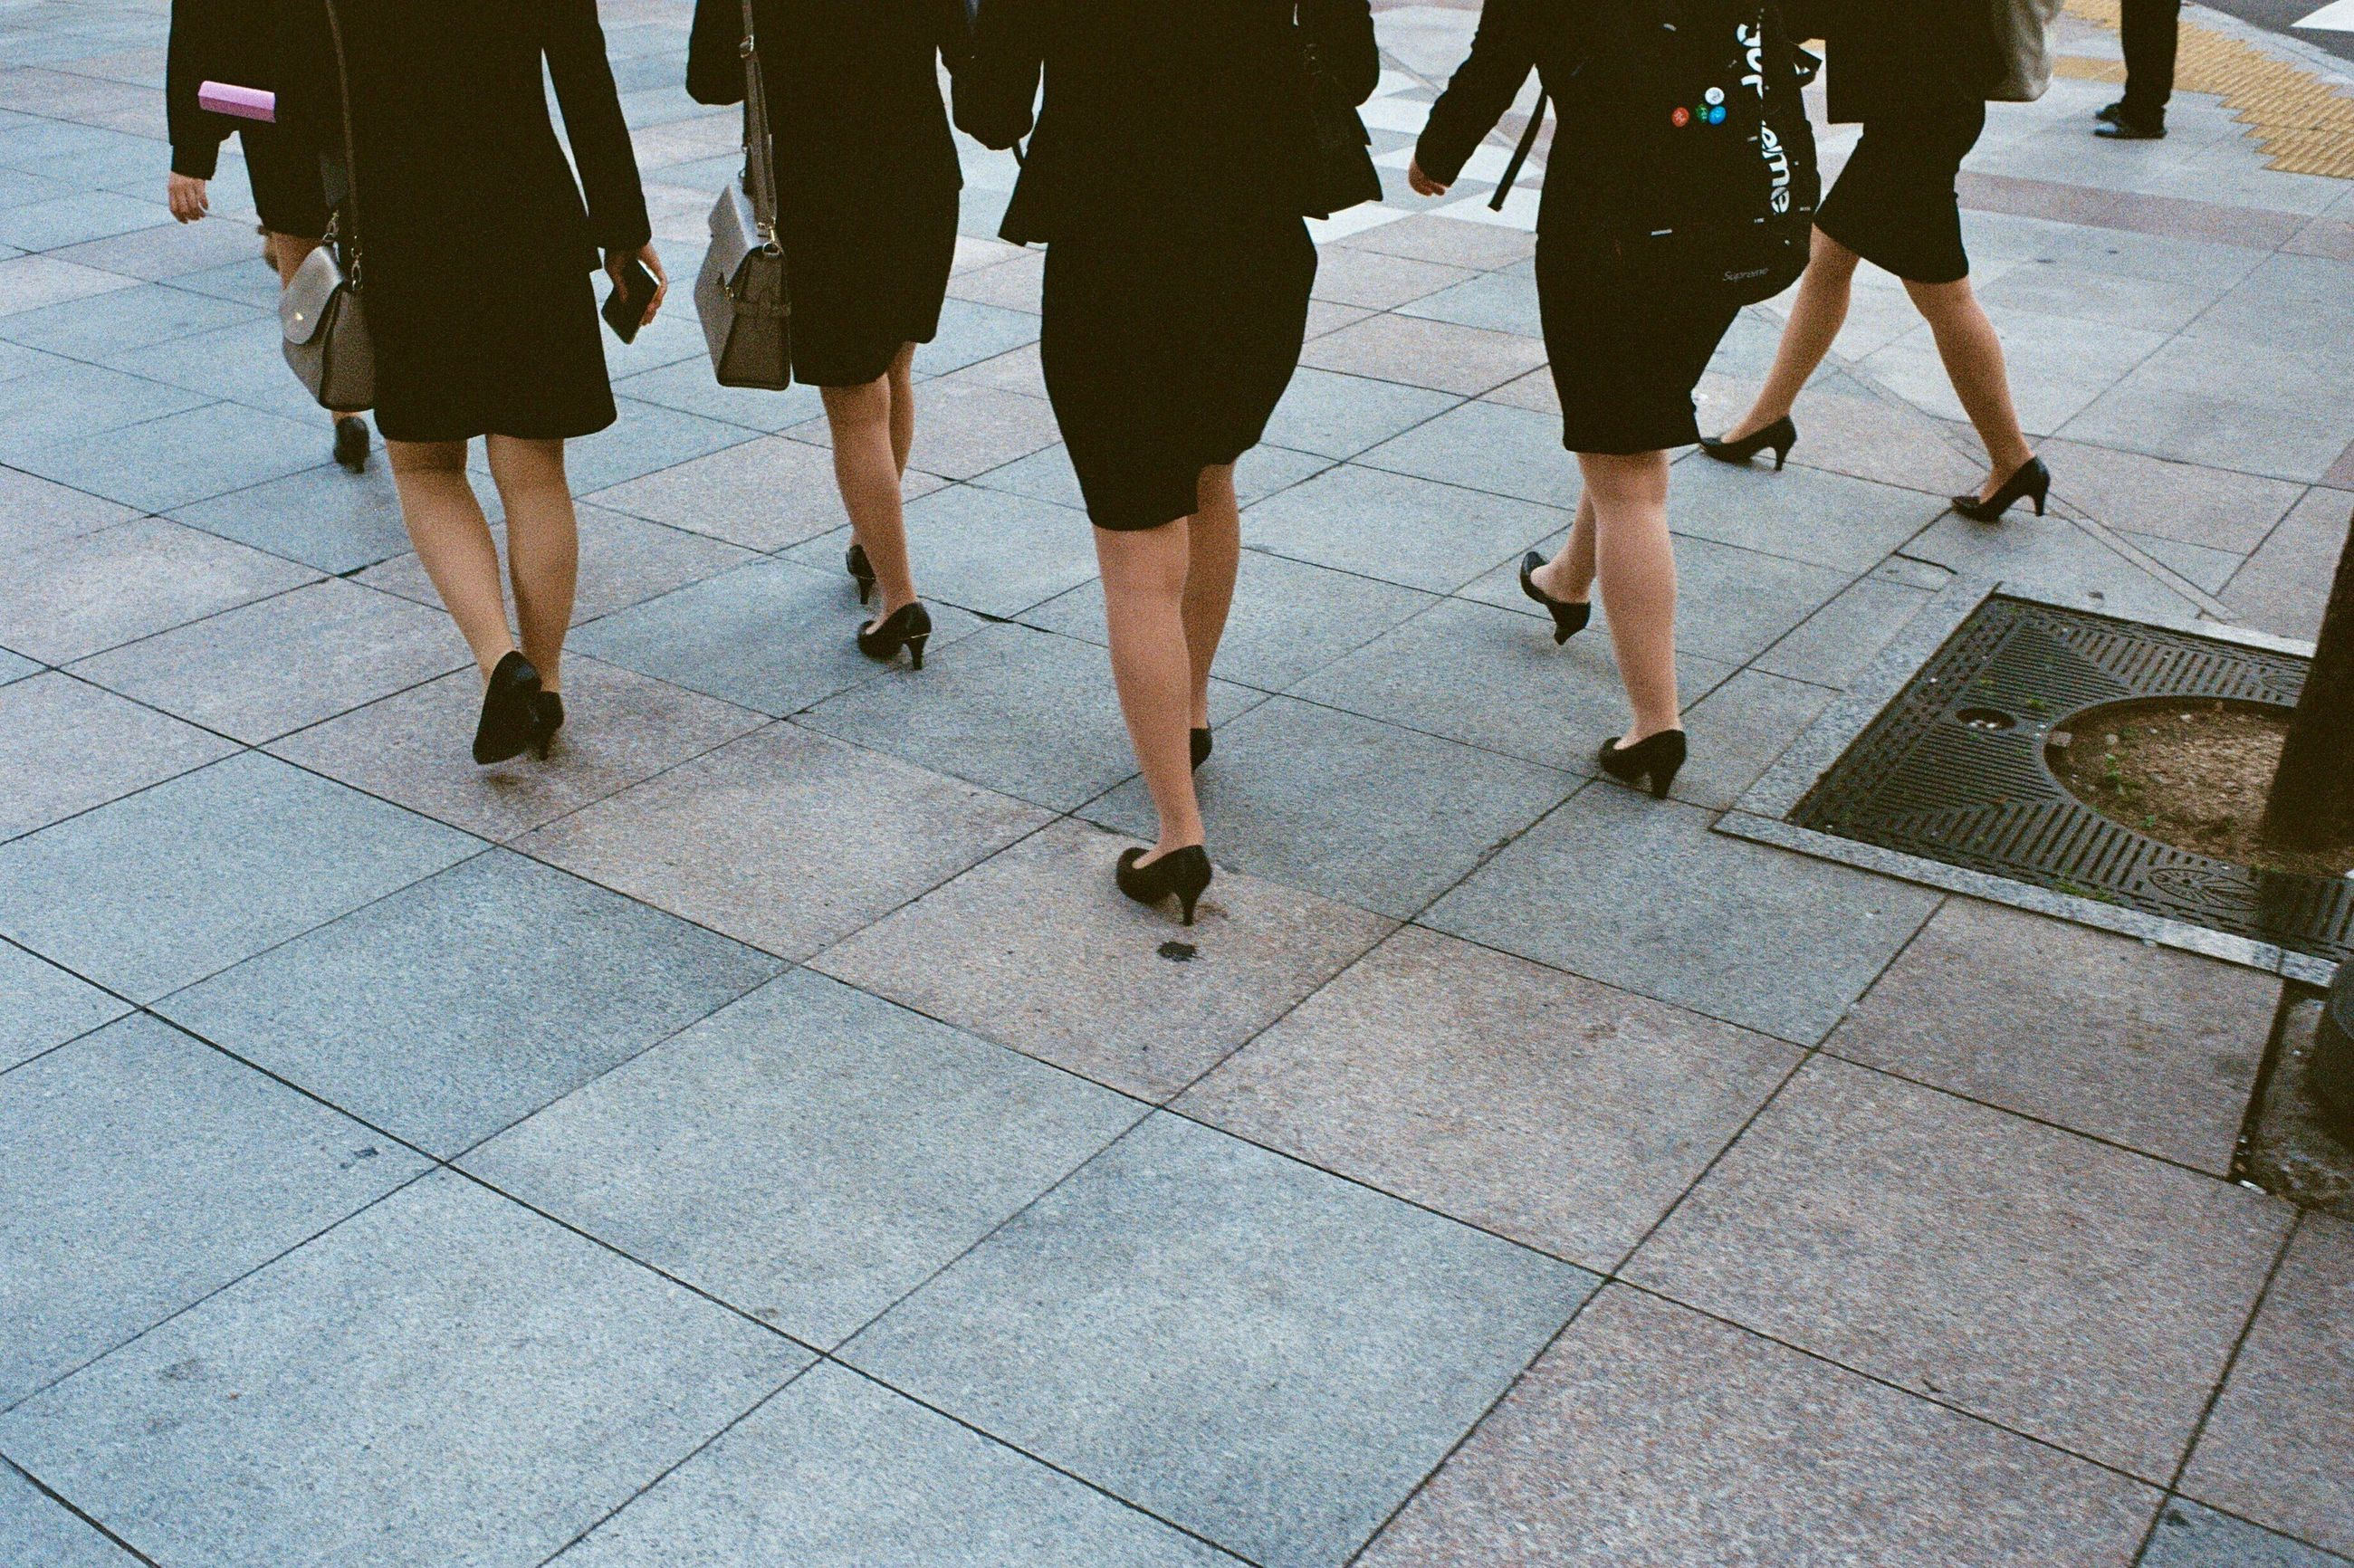 human leg, walking, low section, women, men, human body part, corporate business, real people, day, outdoors, people, adult, adults only